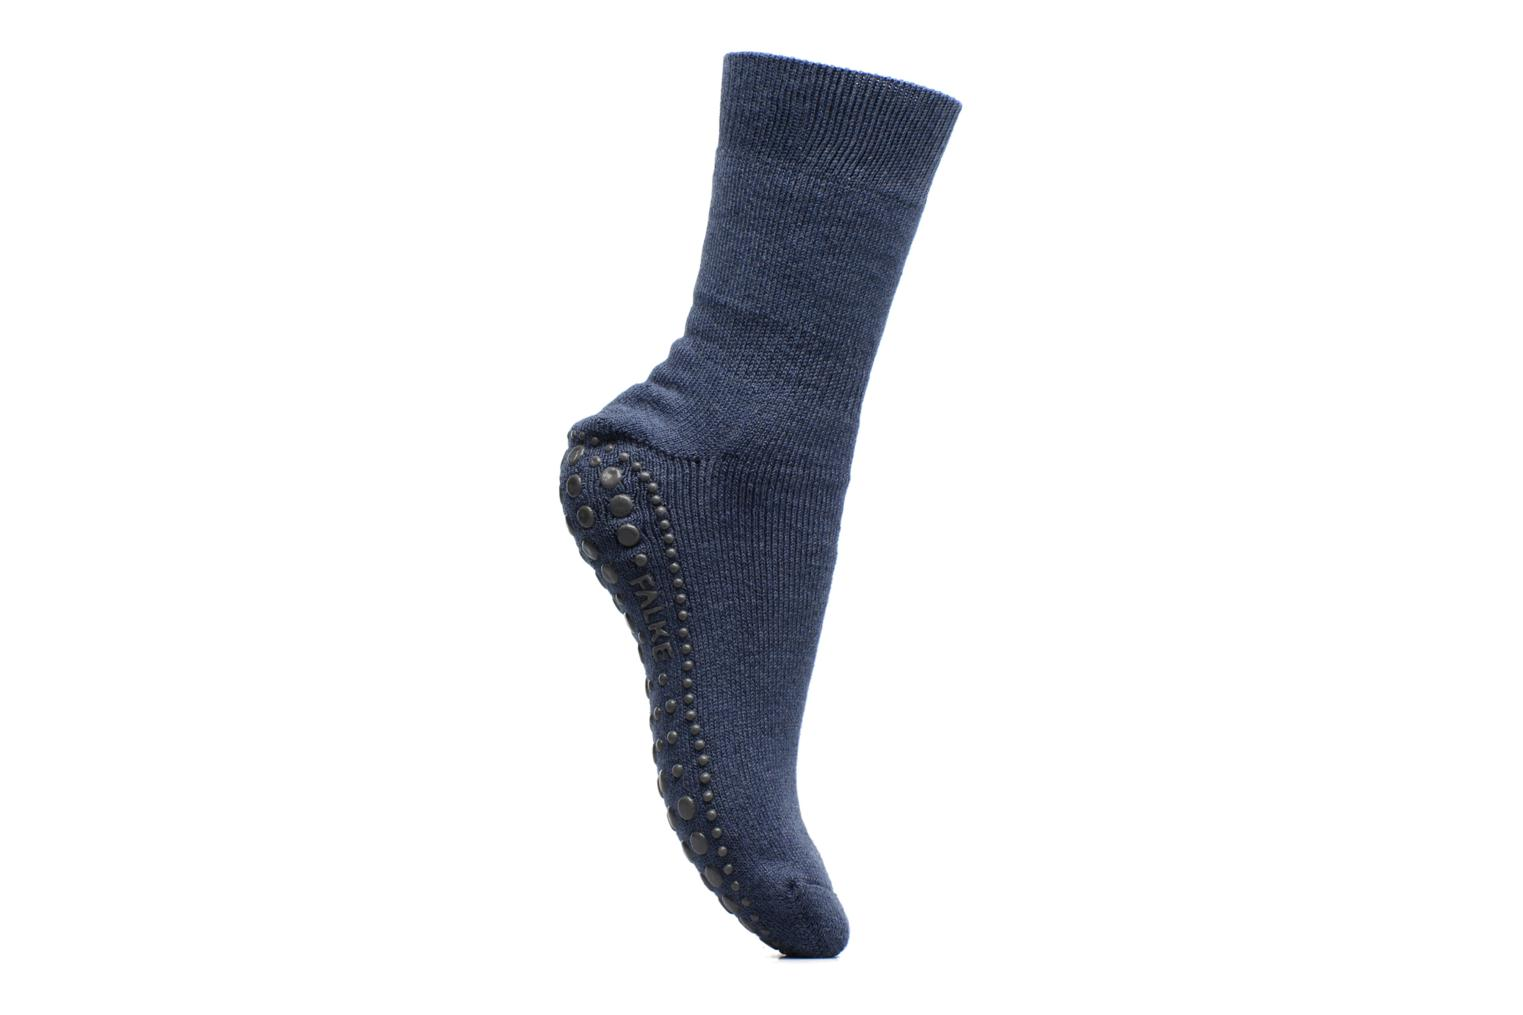 Chaussons-chaussettes Homepads 6690